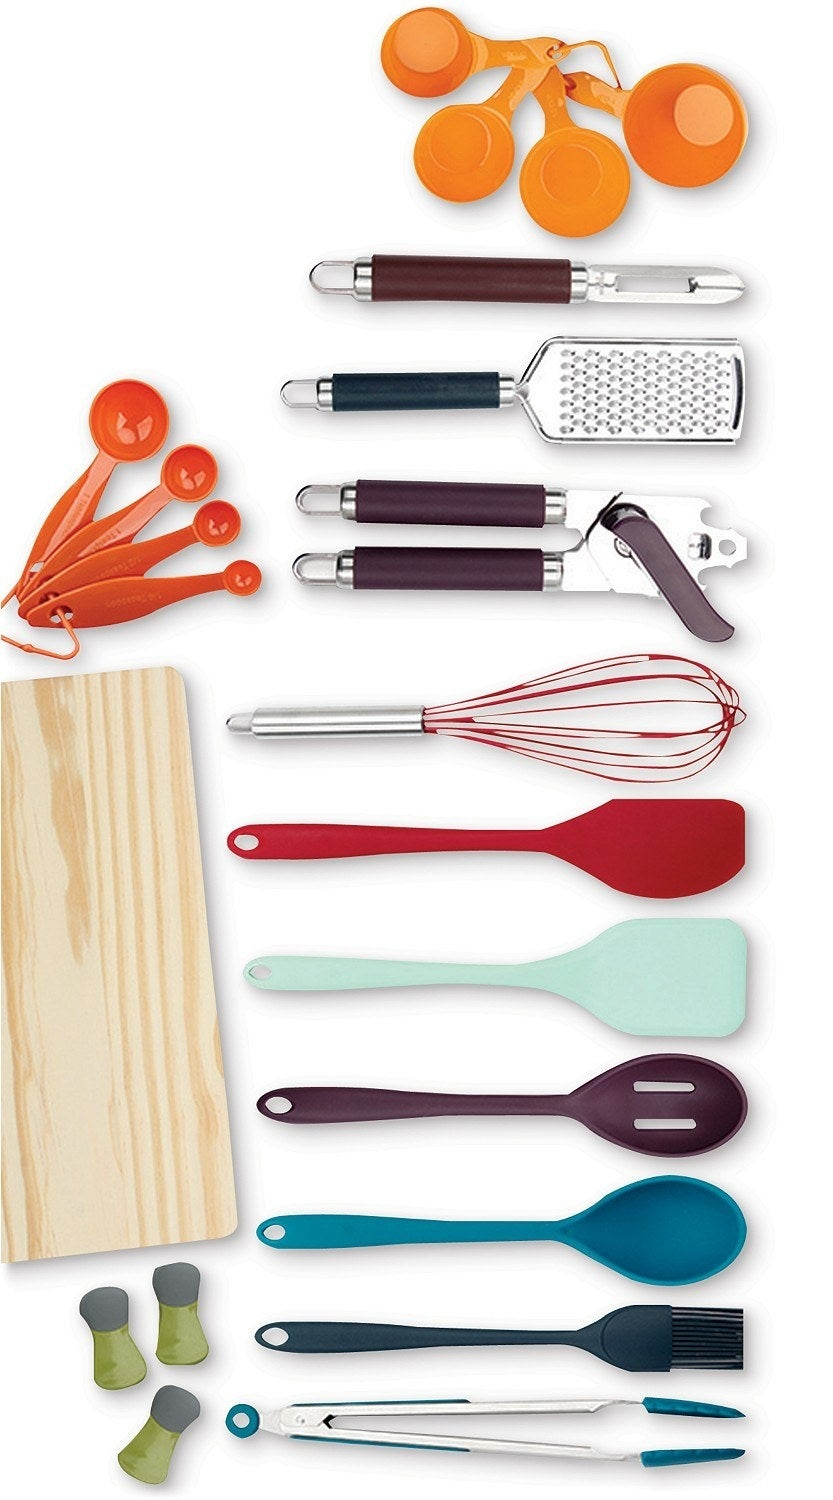 The 22-piece set which includes a colorful collection of utensils, measuring cups, and kitchen gadgets